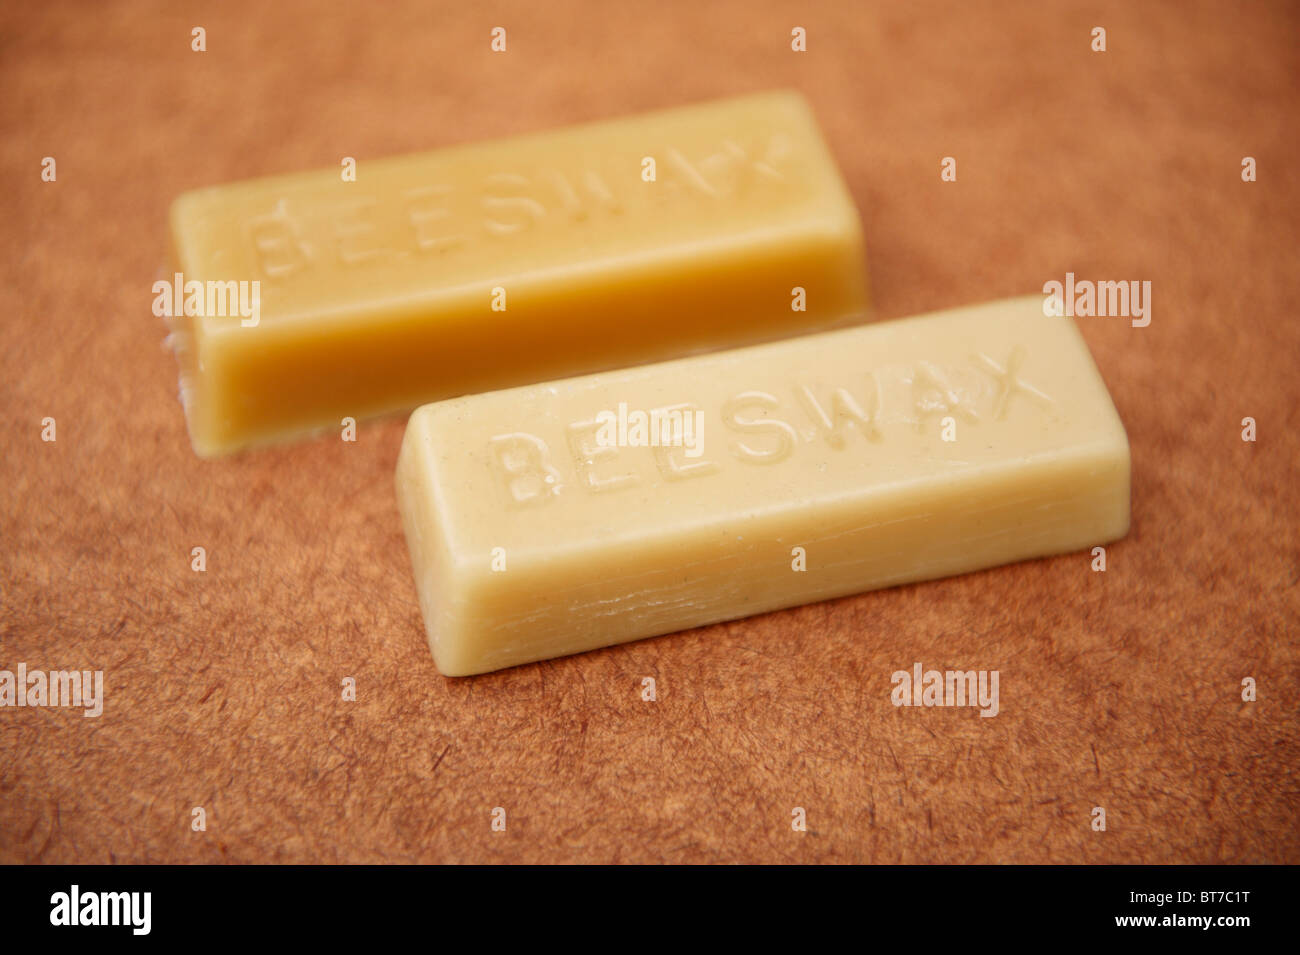 2 blocks of beeswax on a piece of wood - Stock Image